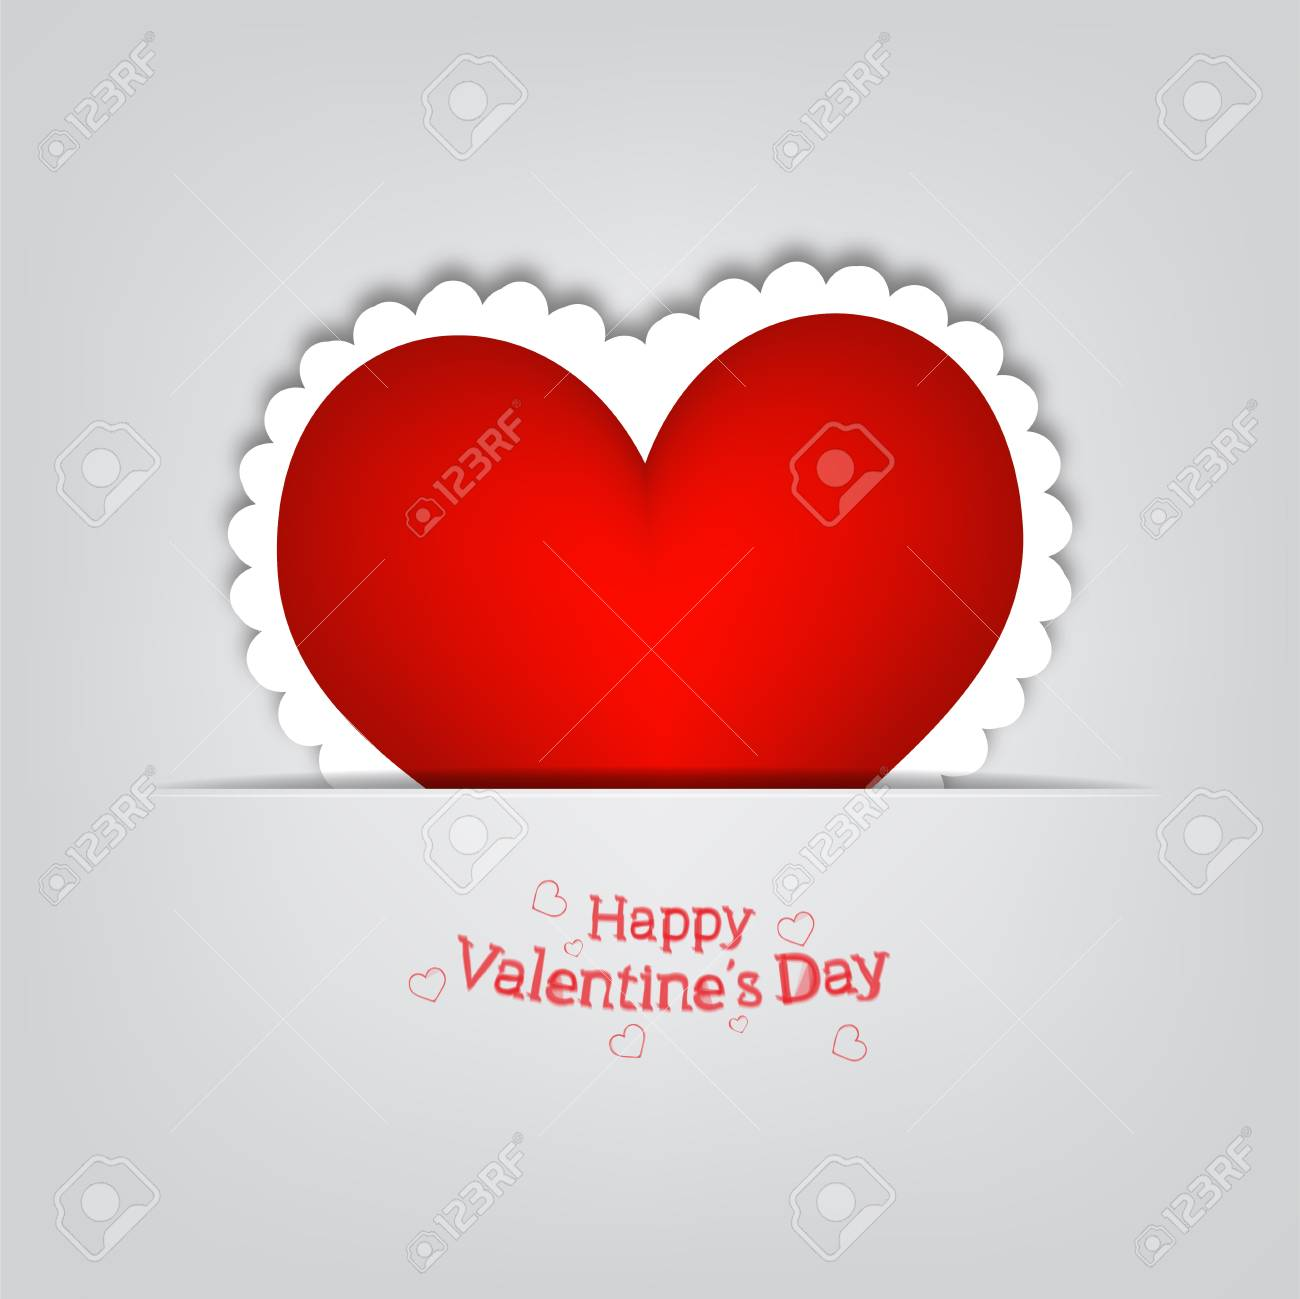 Gift card  Valentine s Day Stock Vector - 16810561